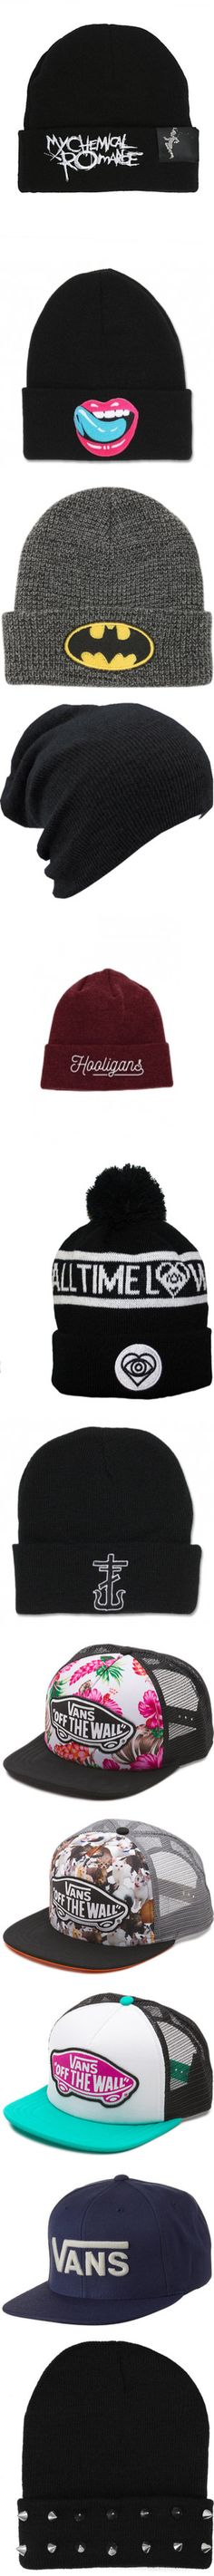 """""""Hats & Beanies"""" by ally-770 ❤ liked on Polyvore"""